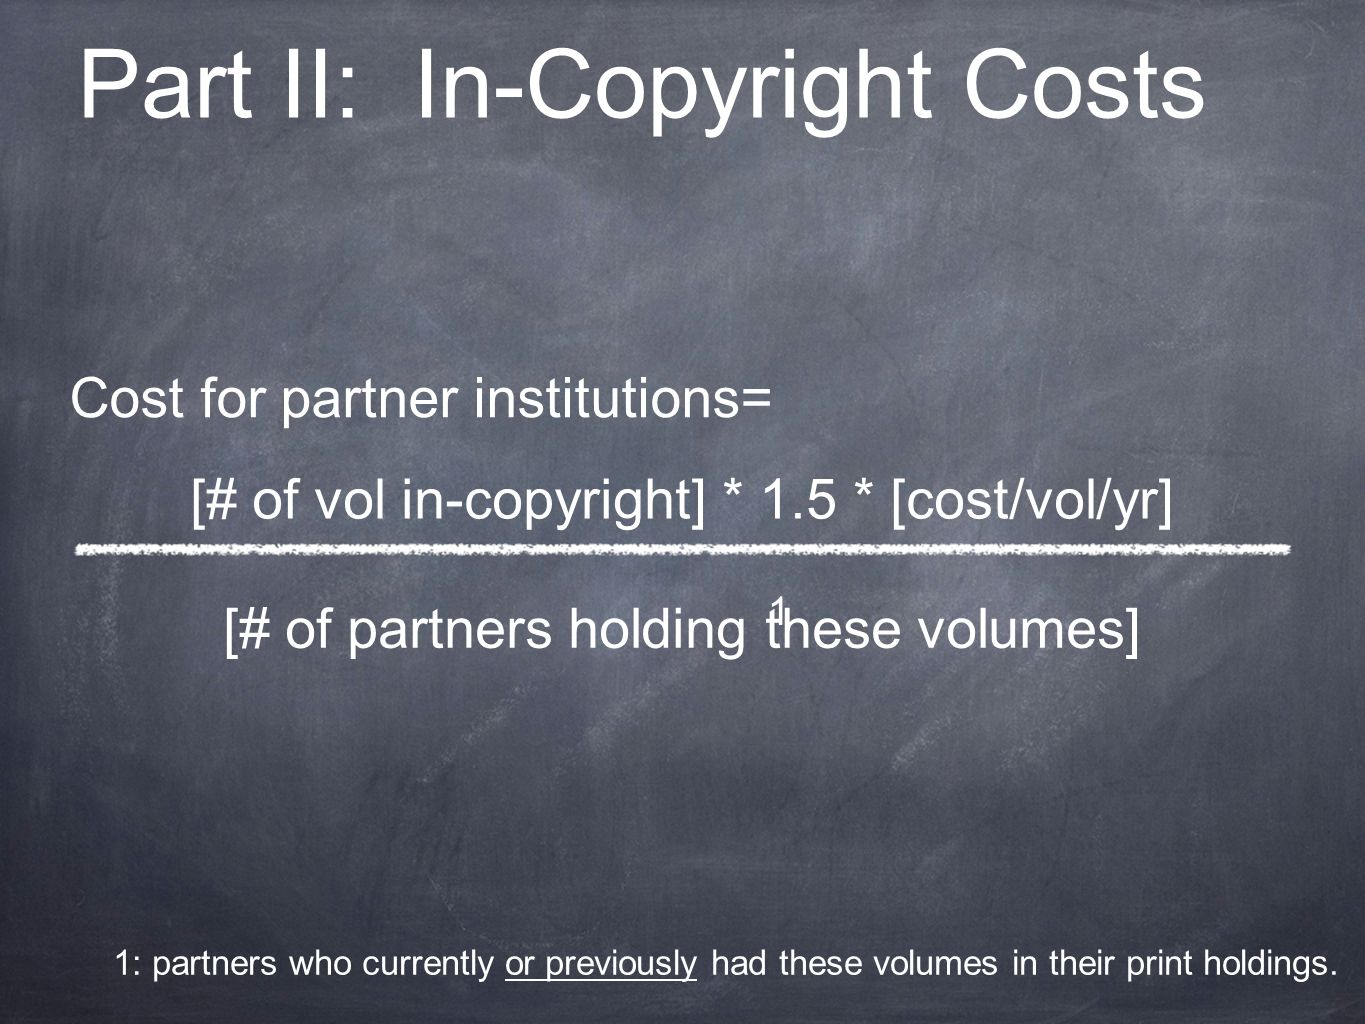 Part II: In-Copyright Costs